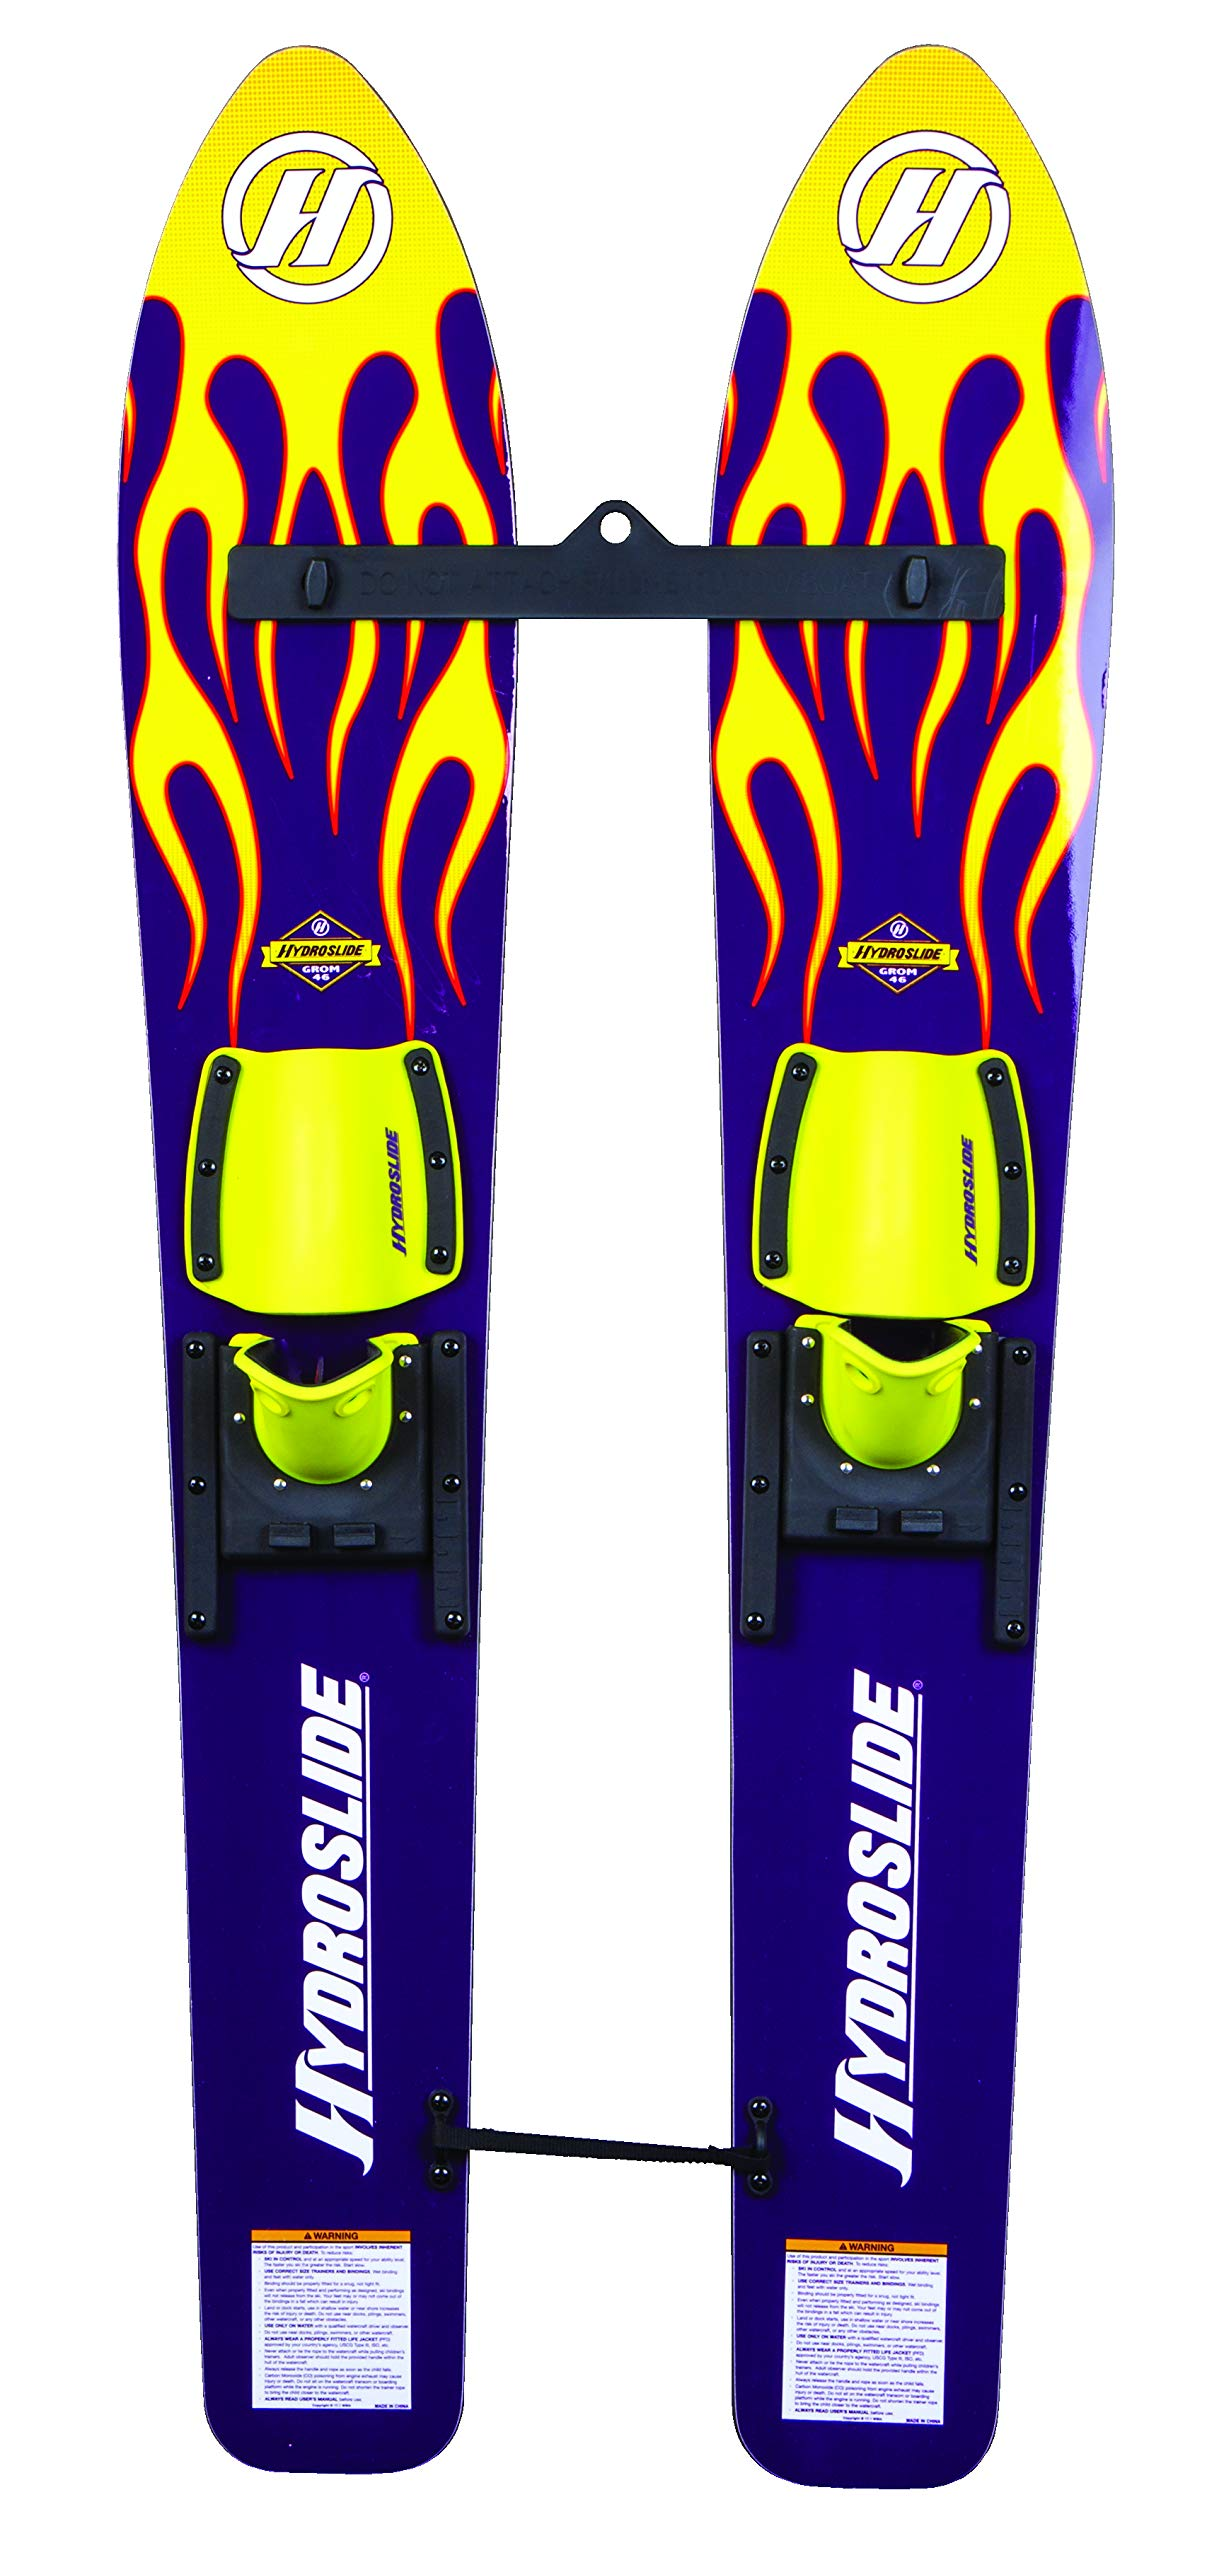 Hydroslide Grom Trainer Combo Water Skis, 46'' by Hydro Slide